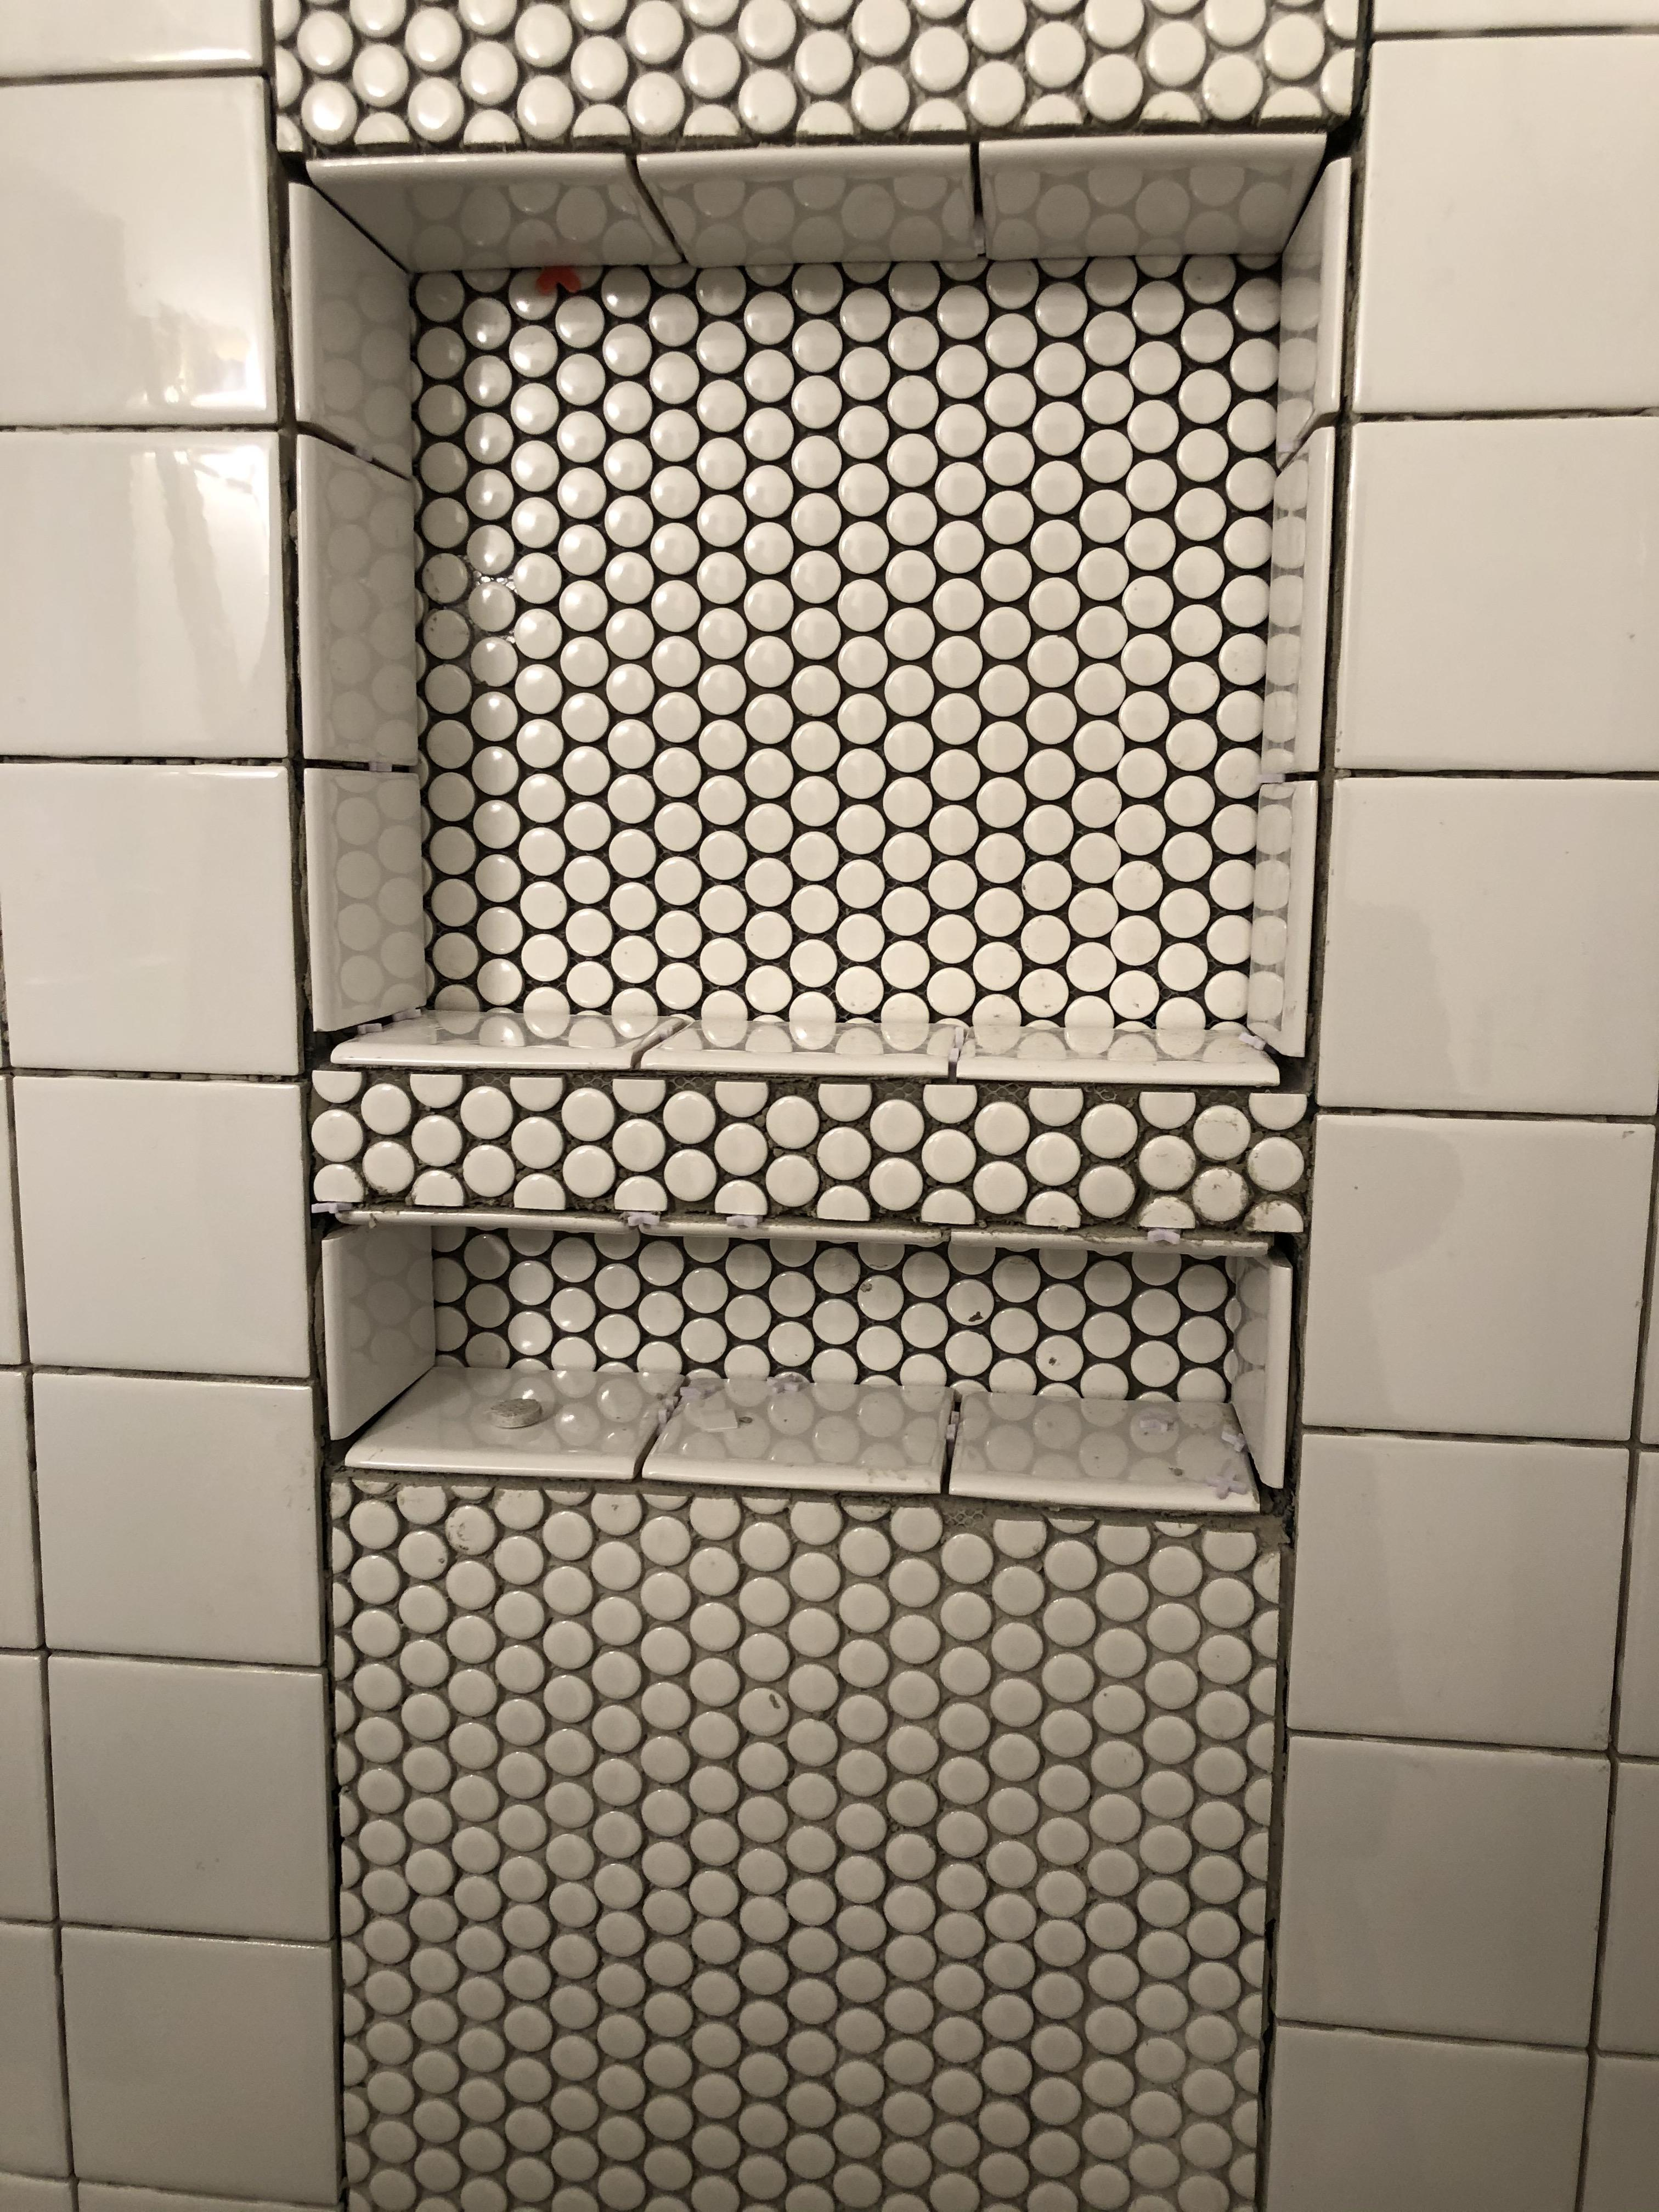 can grout fill these large voids in the